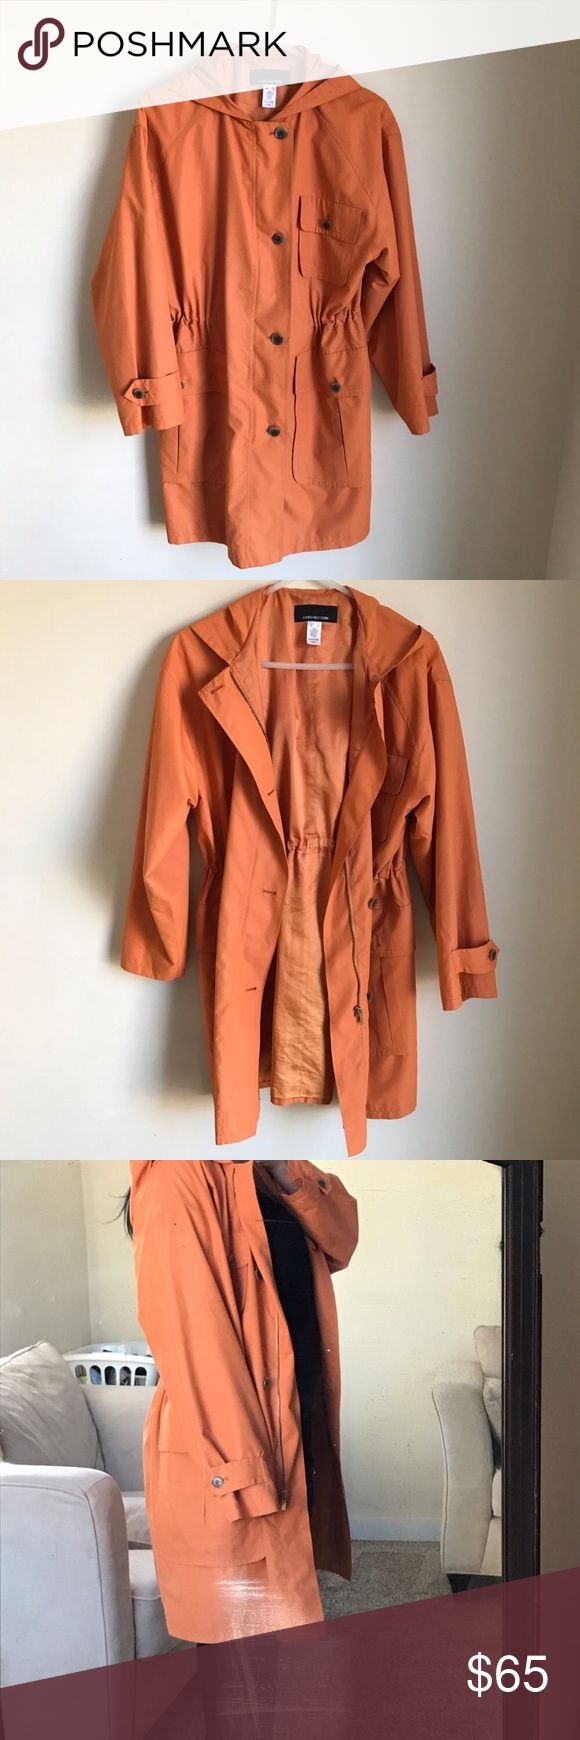 LIGHTWEIGHT TRENCH COAT EUC Lightweight trench coat. Great for spring! Has 3 front pockets. Zip and button closure, fully lined and hood. Also has an inside drawstring waist option. Jones New York Jackets & Coats Trench Coats